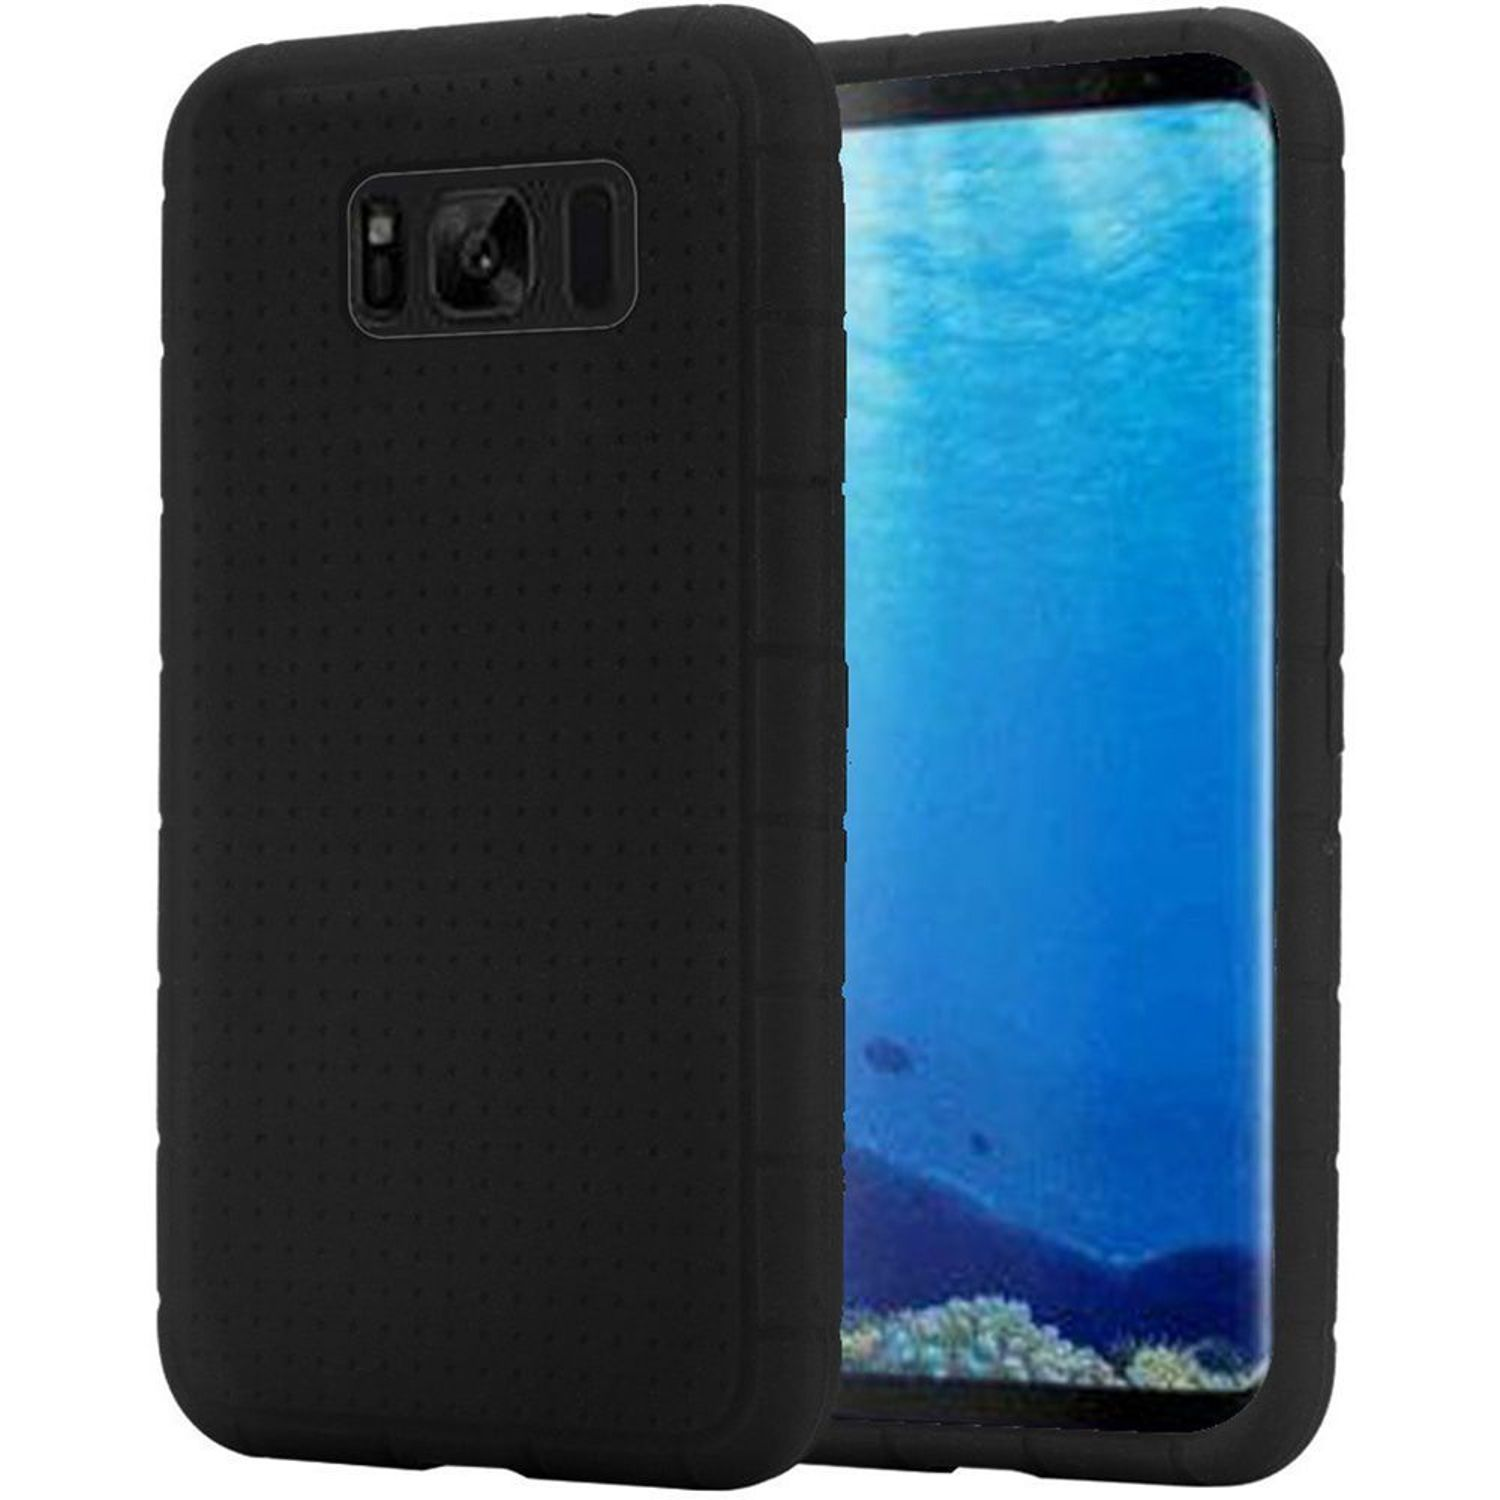 Insten Rugged Rubber Silicone Soft Skin Gel Case Phone Cover For Samsung Galaxy S8, Black